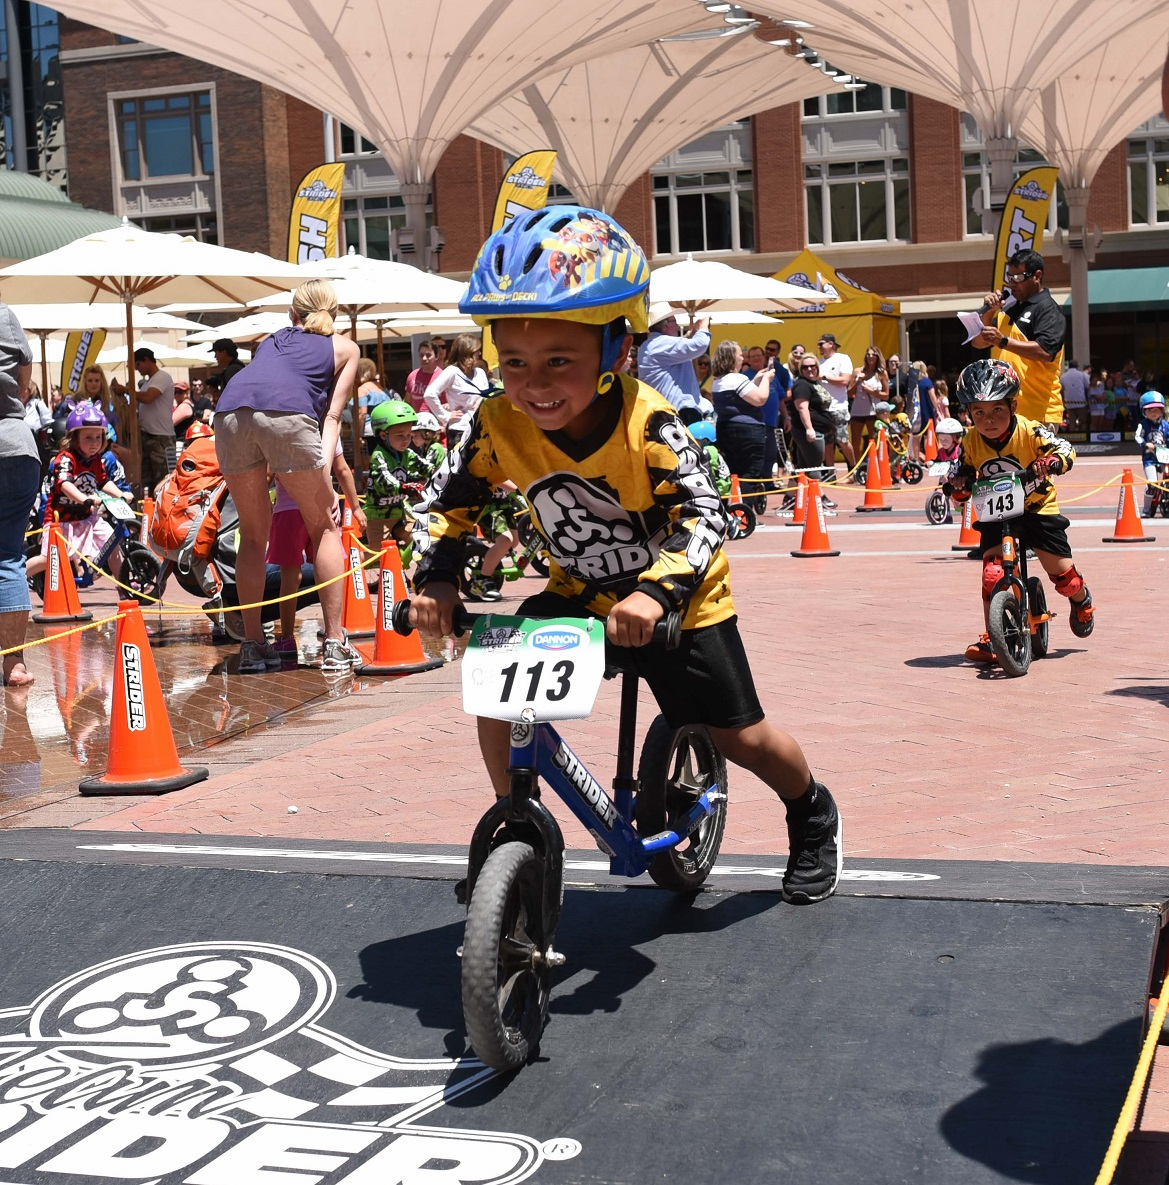 Kids Strider Bike Race Out There Outdoors